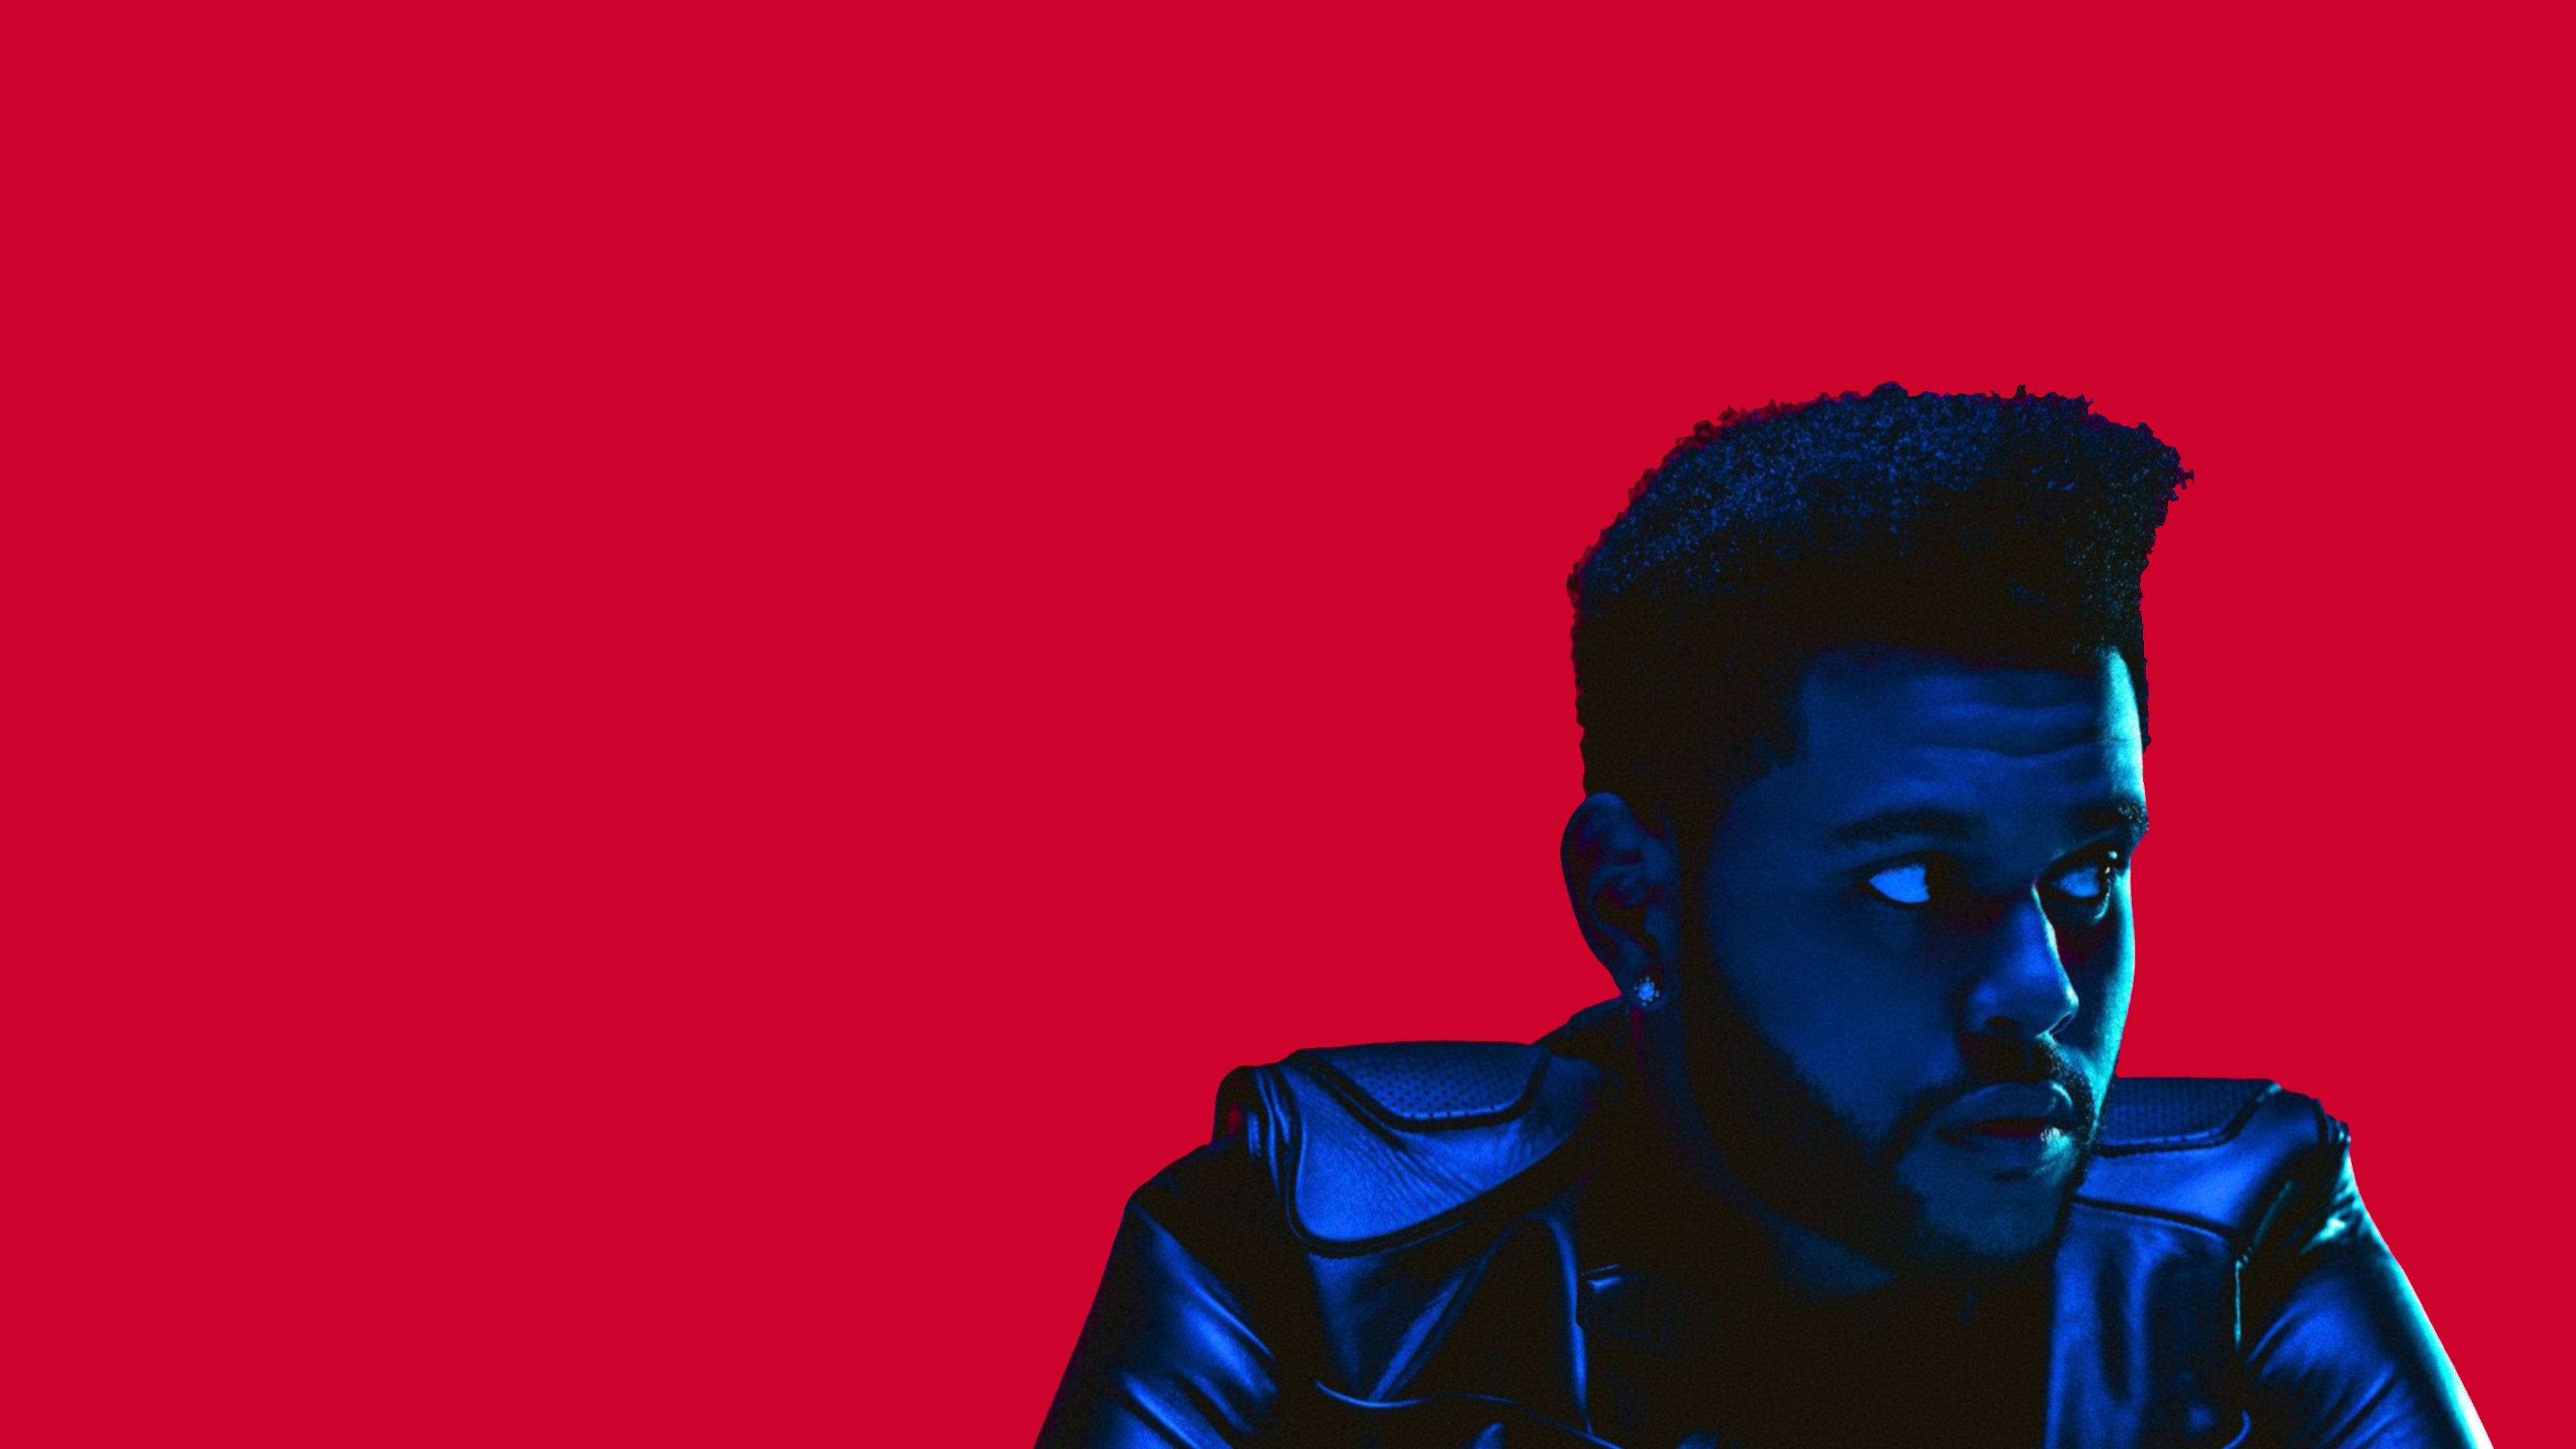 The Weeknd Wallpaper 1 Download Free Stunning Backgrounds For